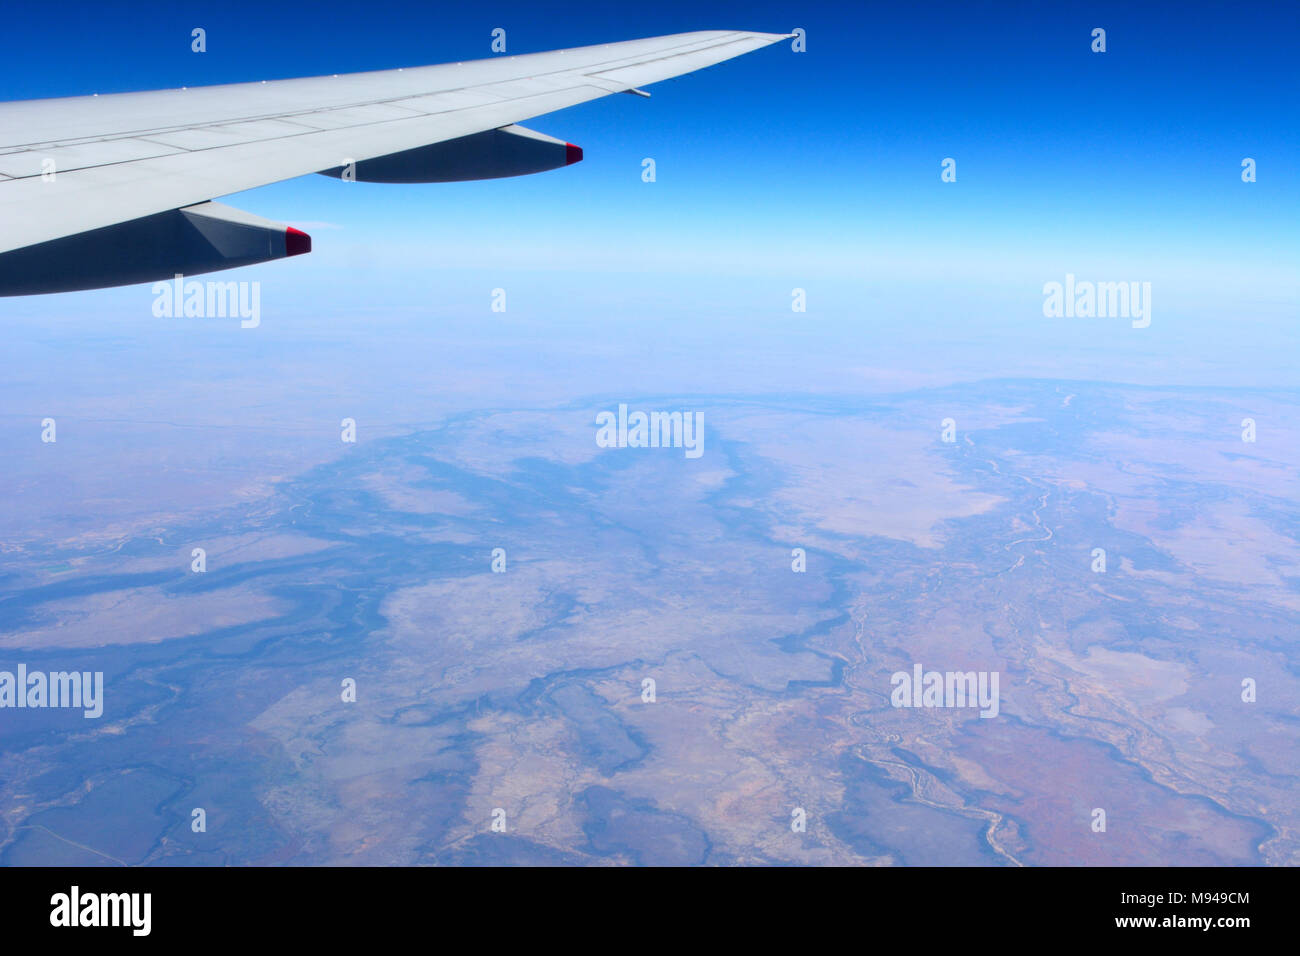 Wing of airplane flying over desert landscape in Australian outback. - Stock Image